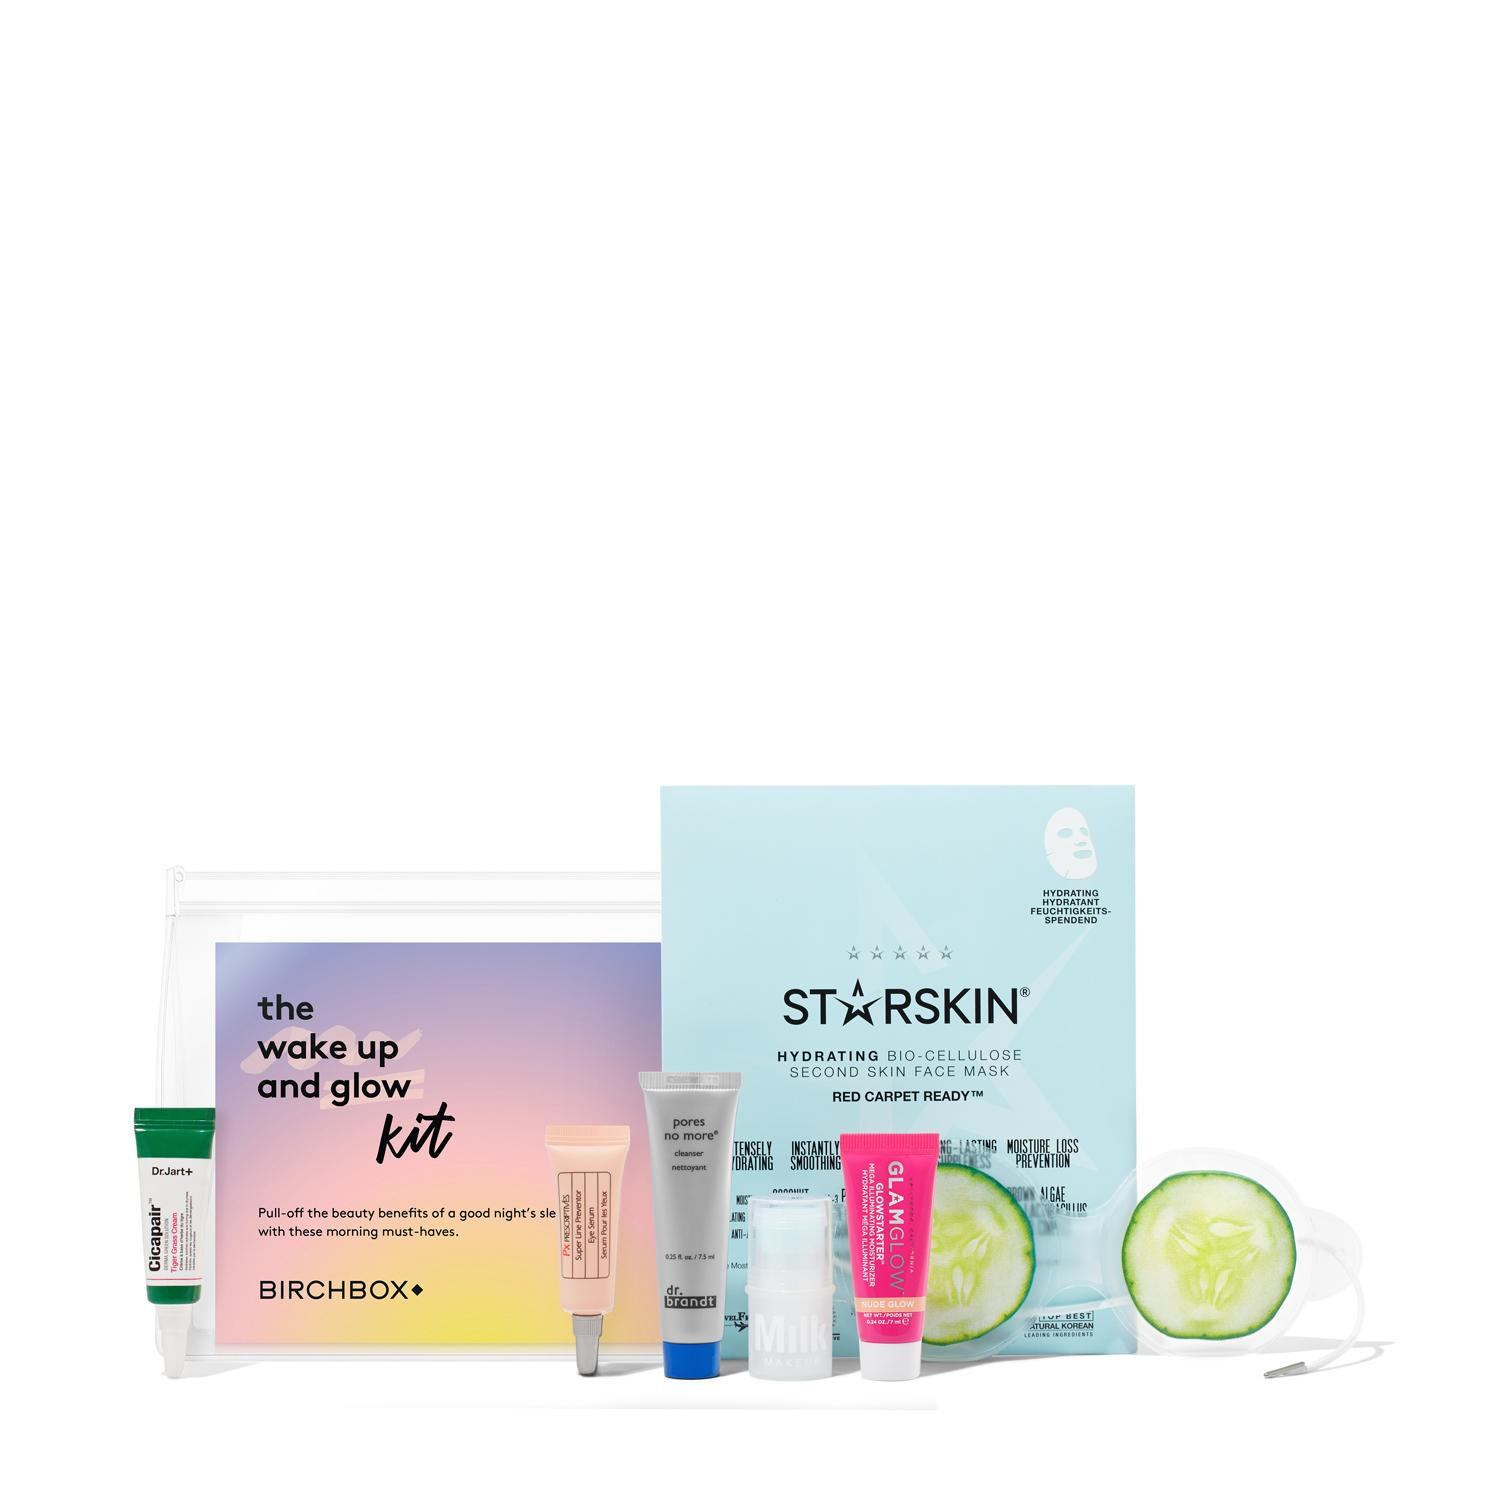 Birchbox The Wake Up and Glow Kit // Price: $20 // (Image: Birchbox)<p></p>